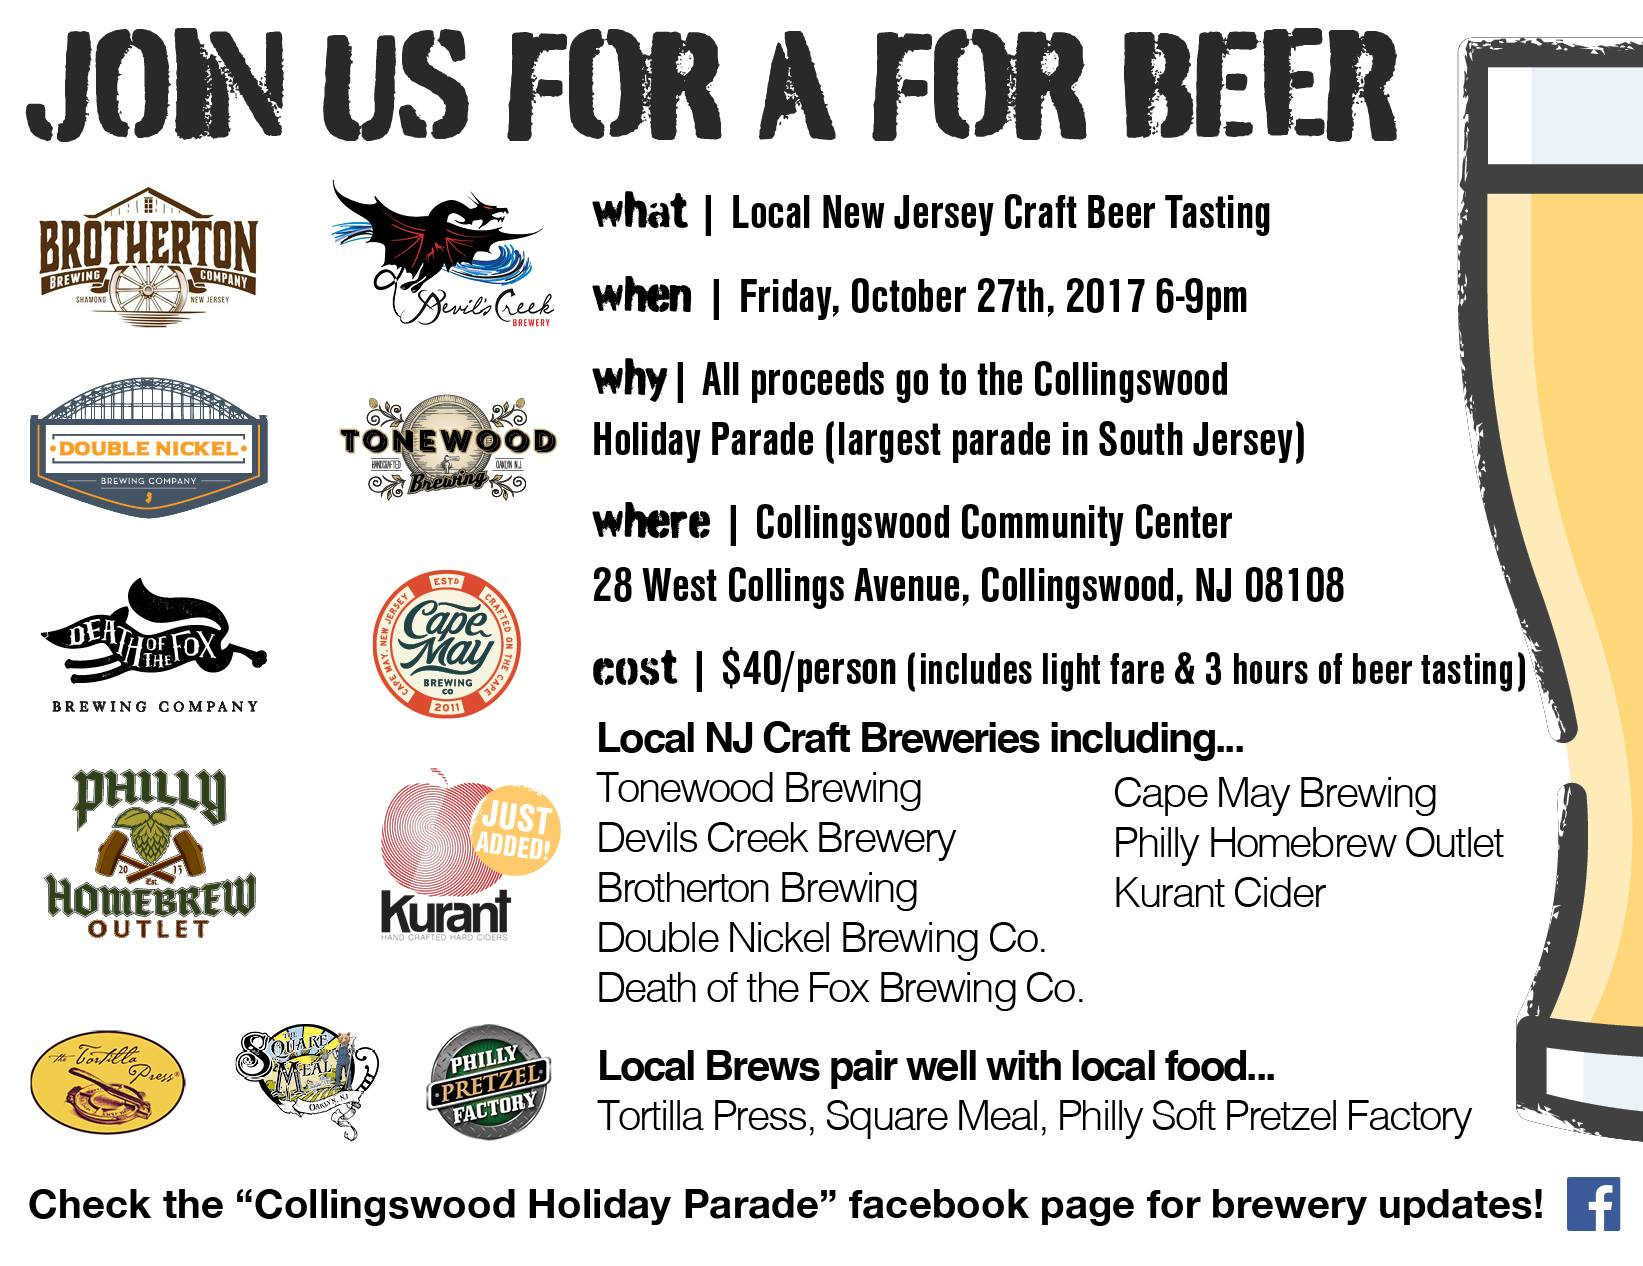 craft beer tasking fundraiser flyer